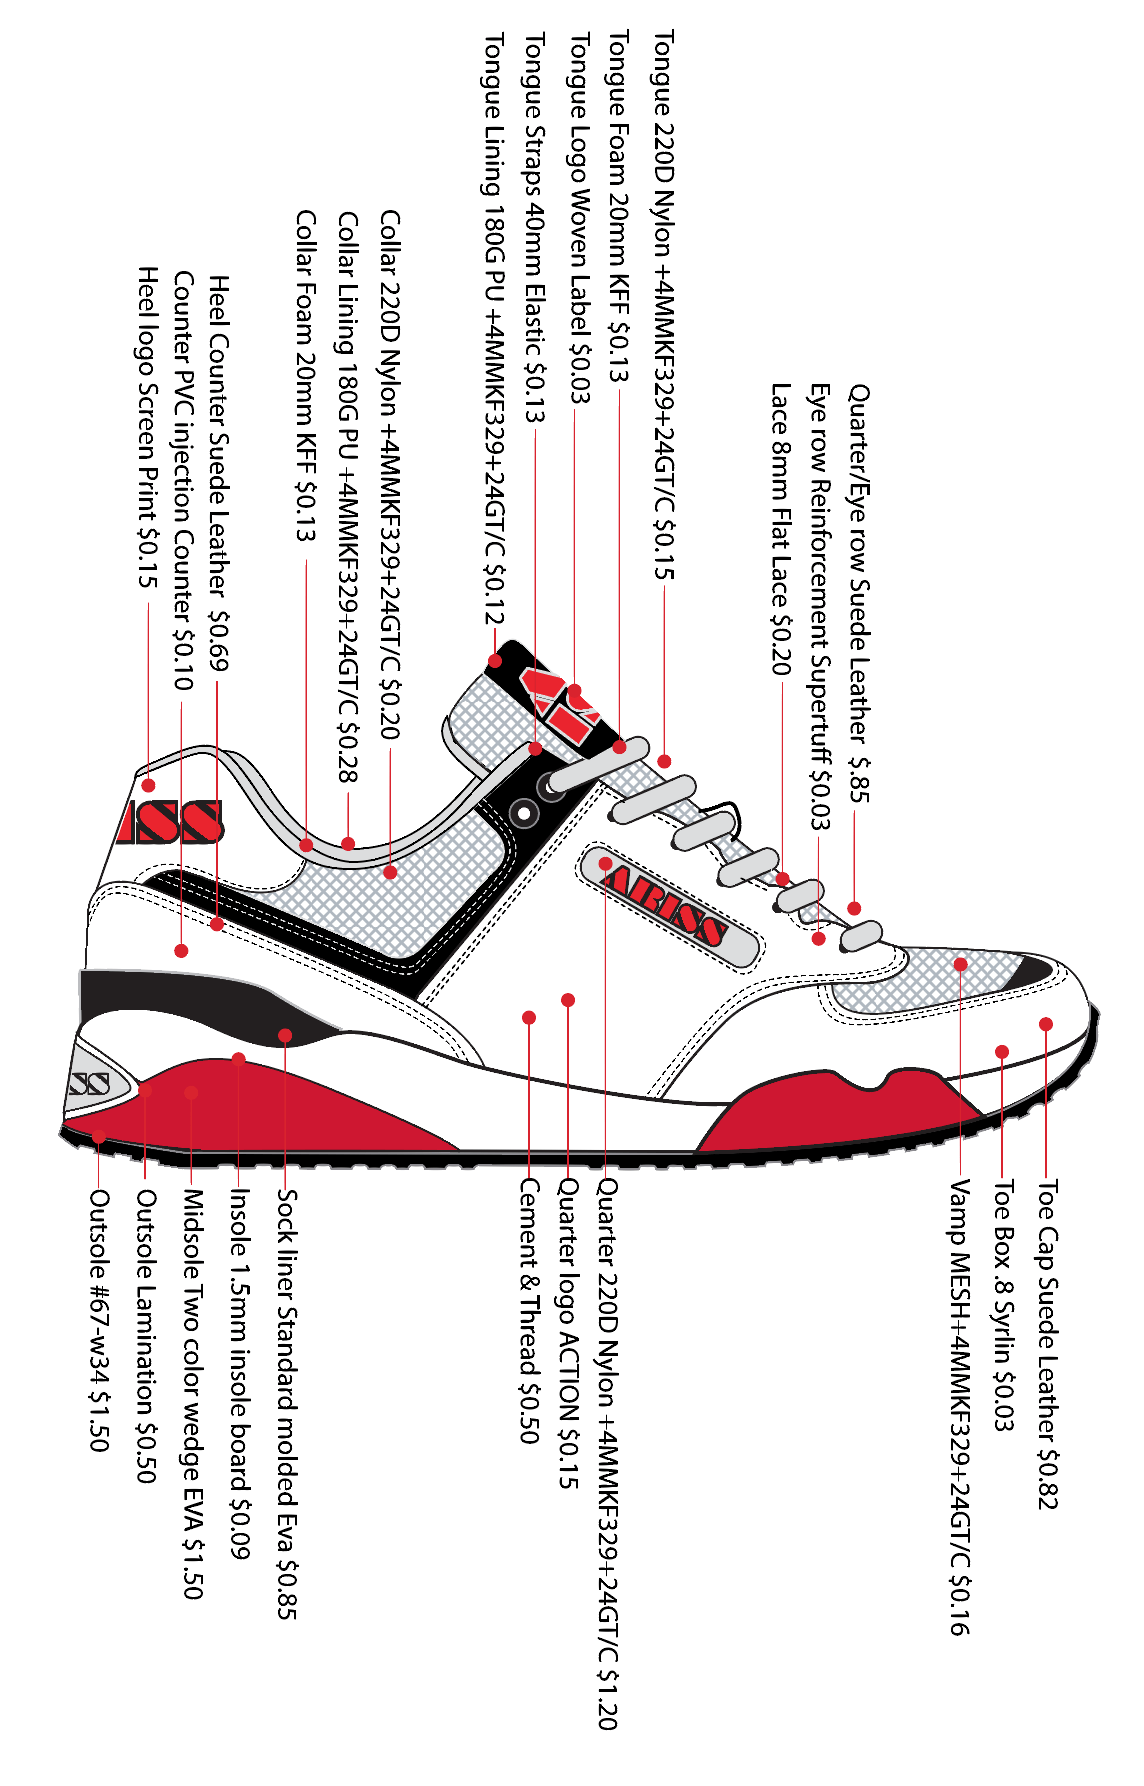 How to Select Footwear Materials - How